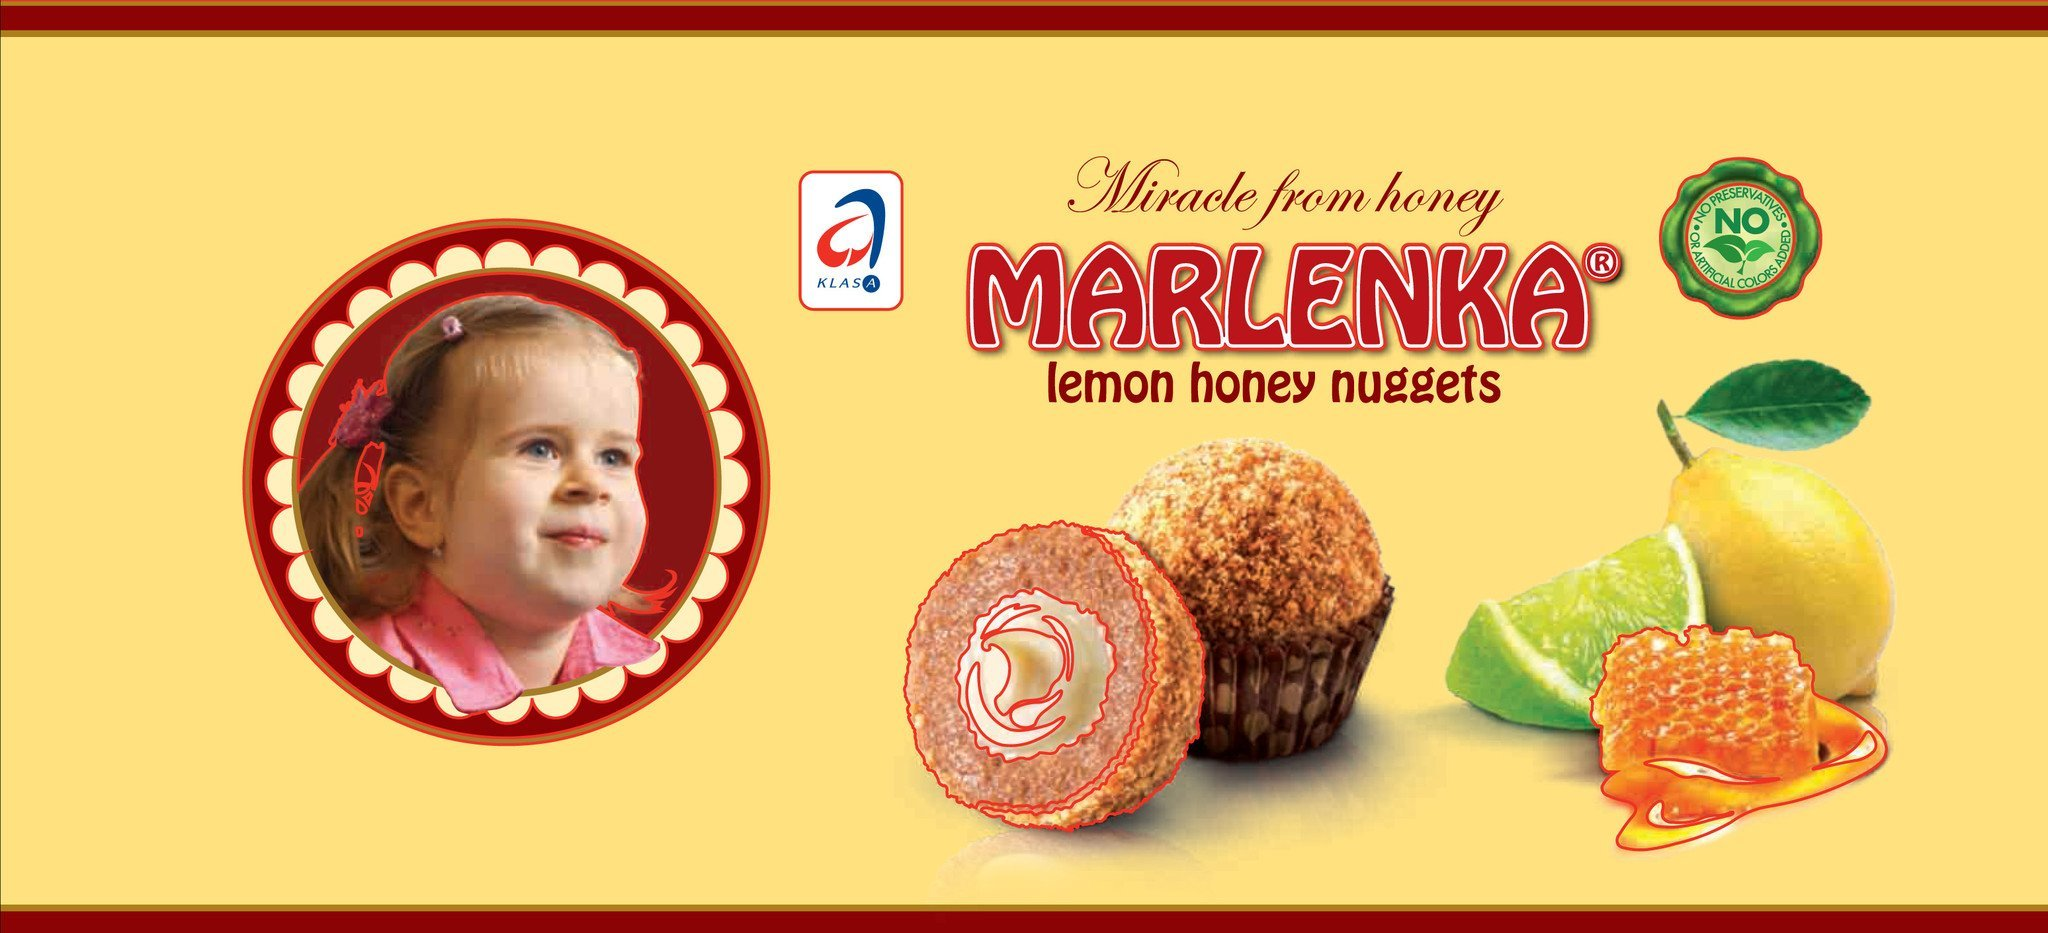 Lemon Honey Nuggets - MARLENKA UK